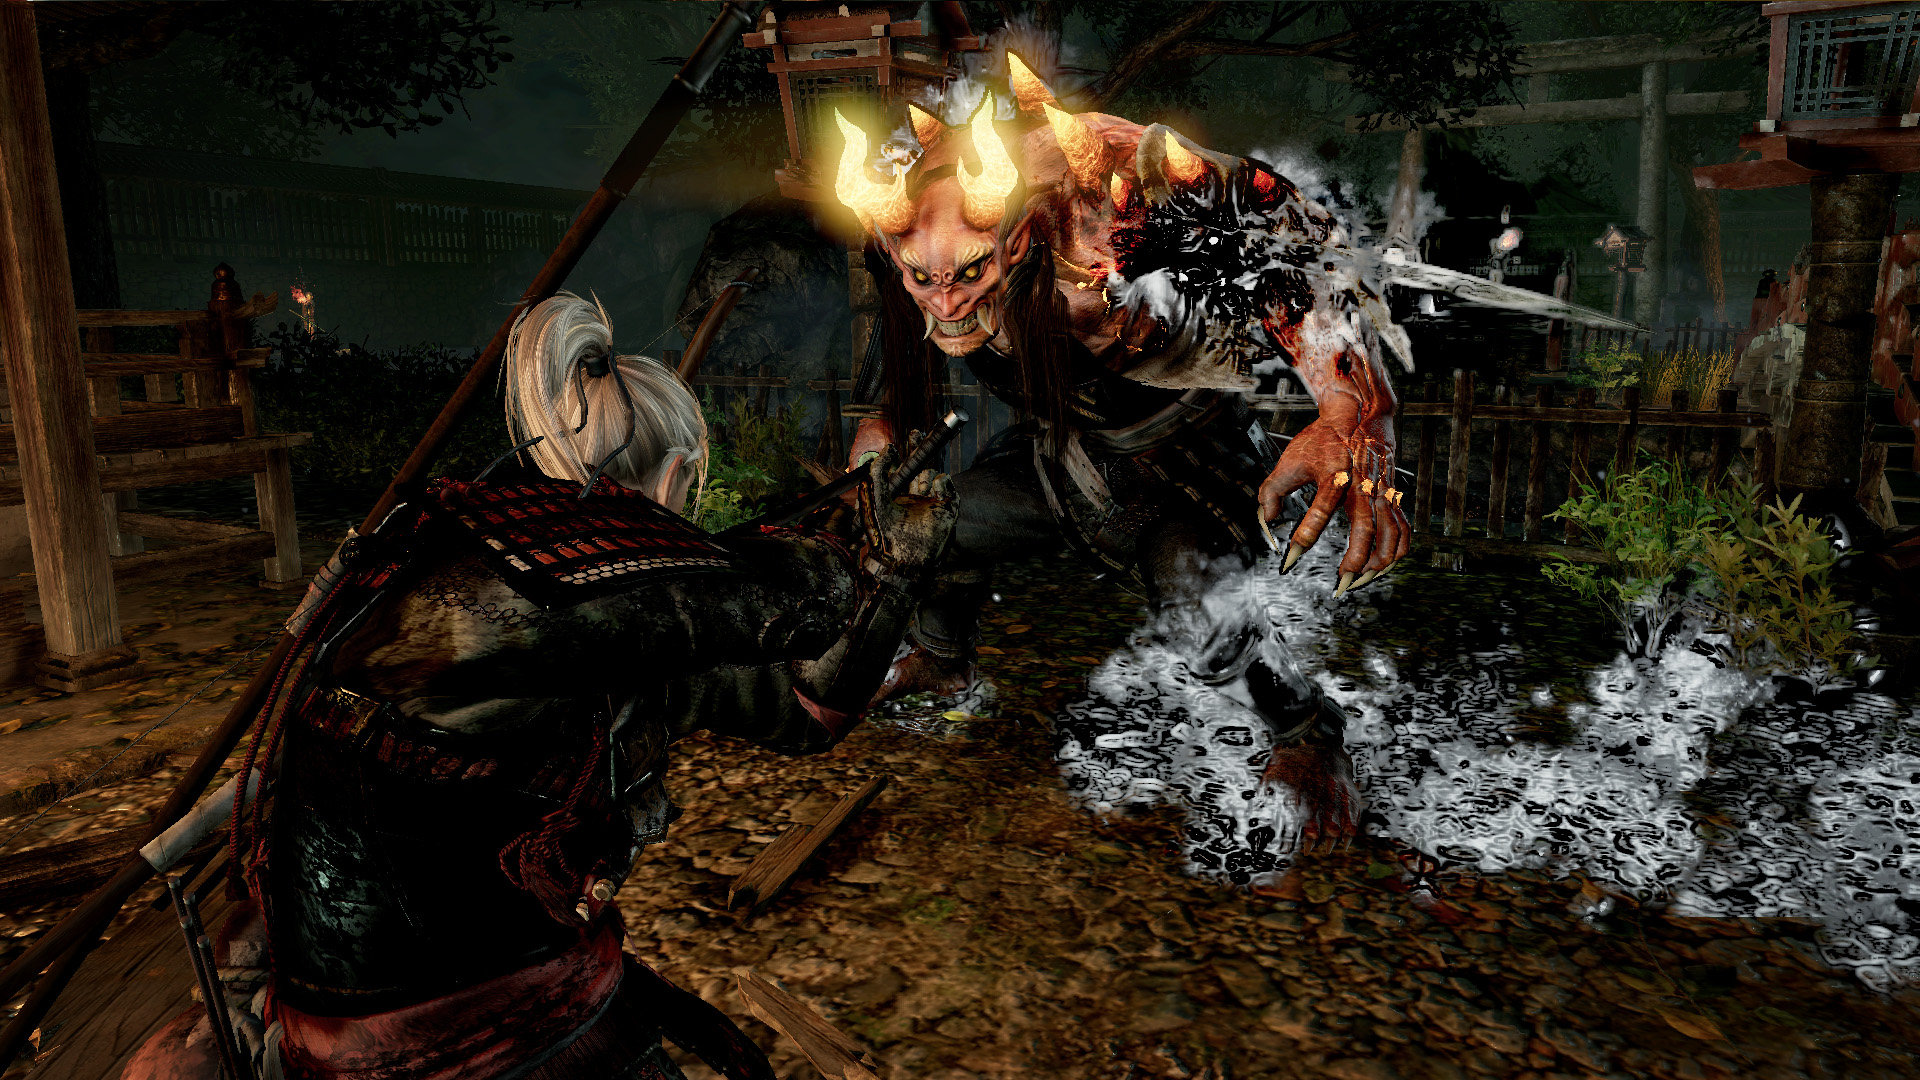 nioh-yoki-screen-01-ps4-us-10nov16?$Medi